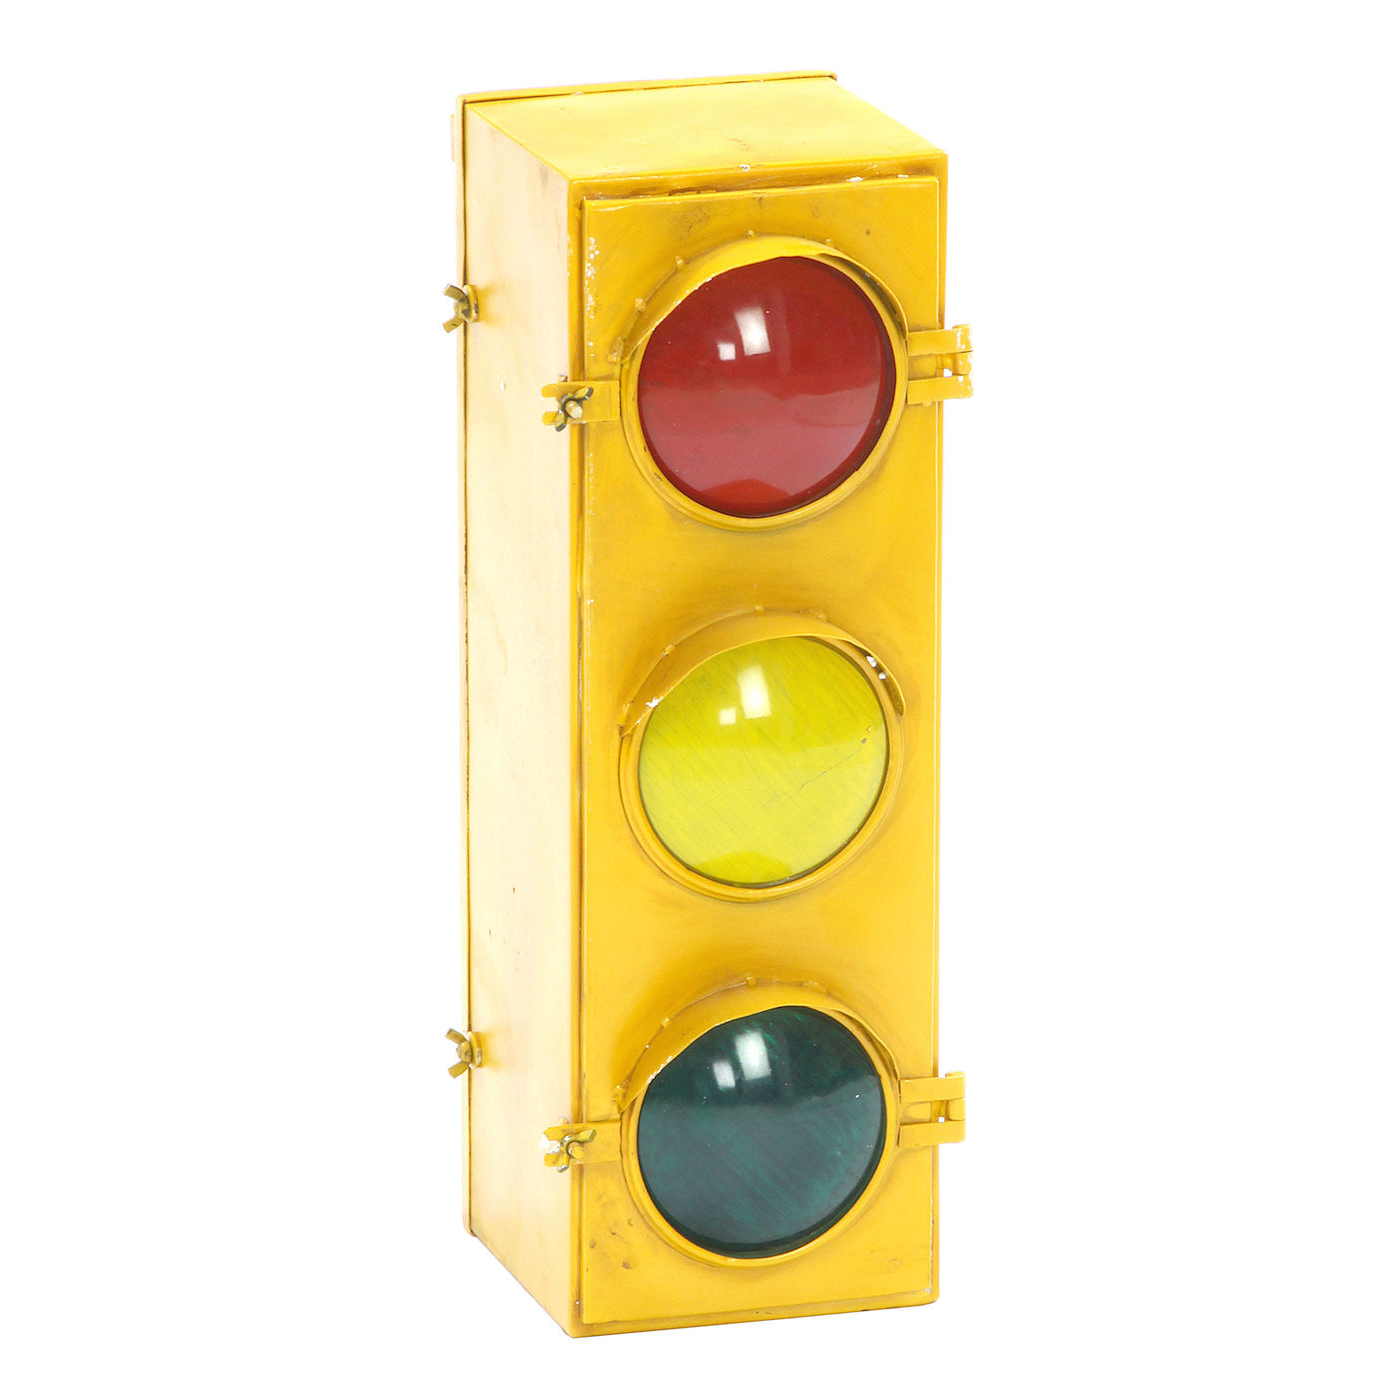 Retro Traffic Lamp Traffic Lamp Lamp Light Light